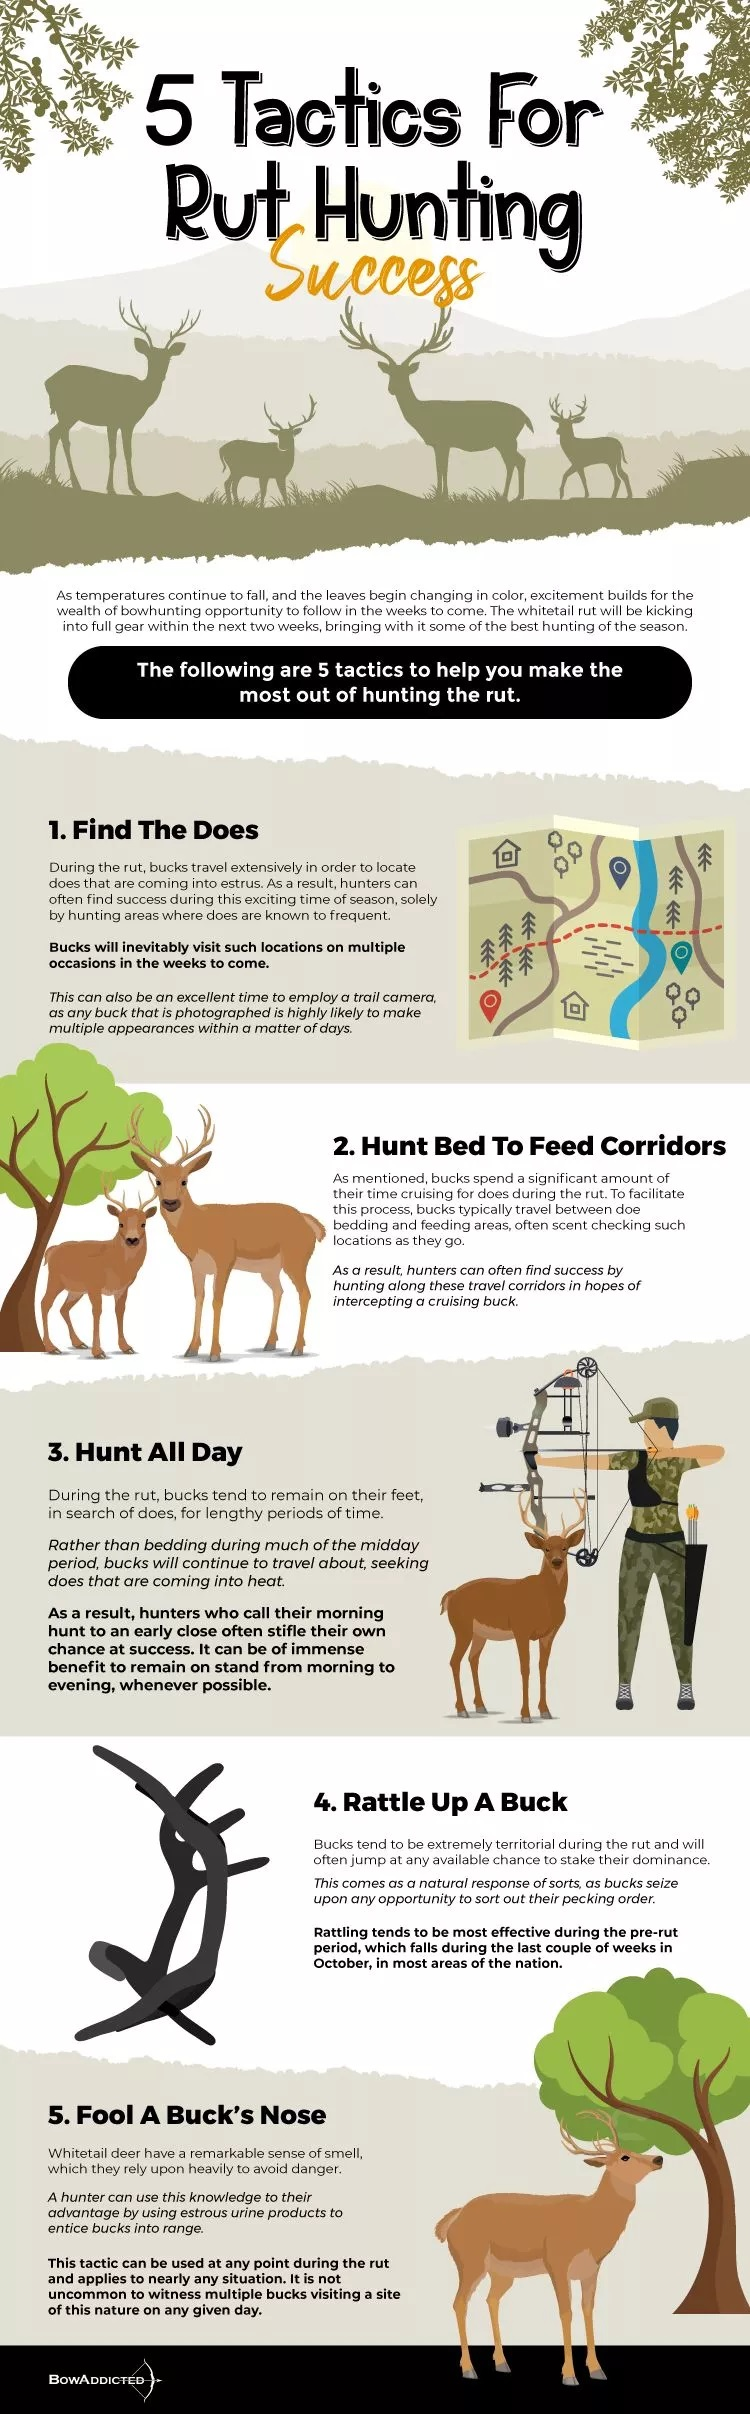 5 Tactics For Rut Hunting Success #infographic #Sports and Athletic #Hunting